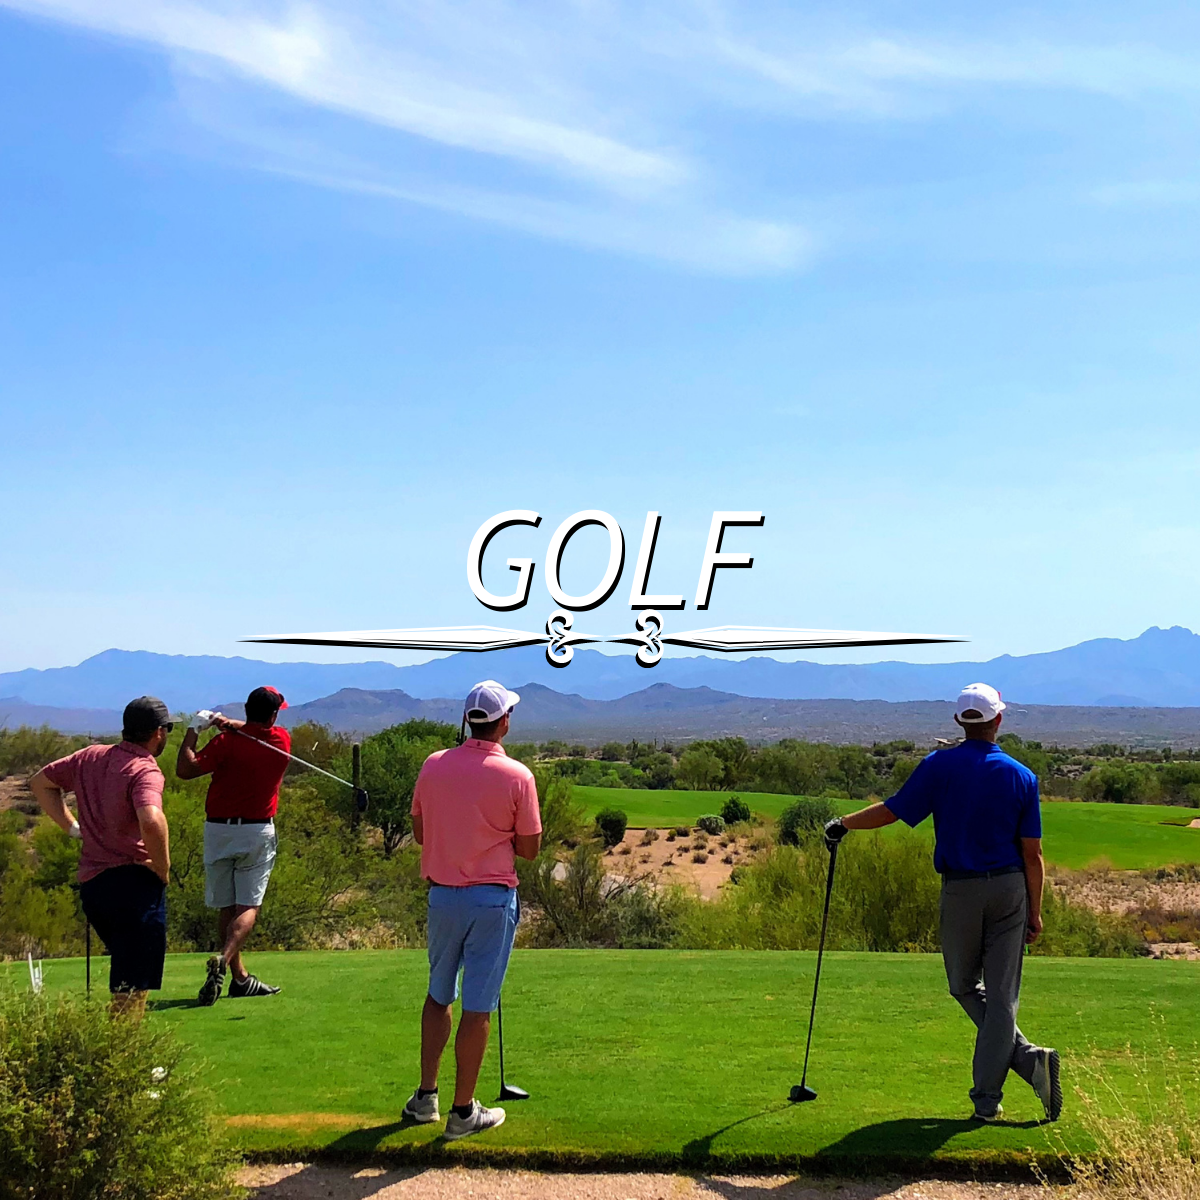 Play the #1 golf course with Golf & Grow traveling country club